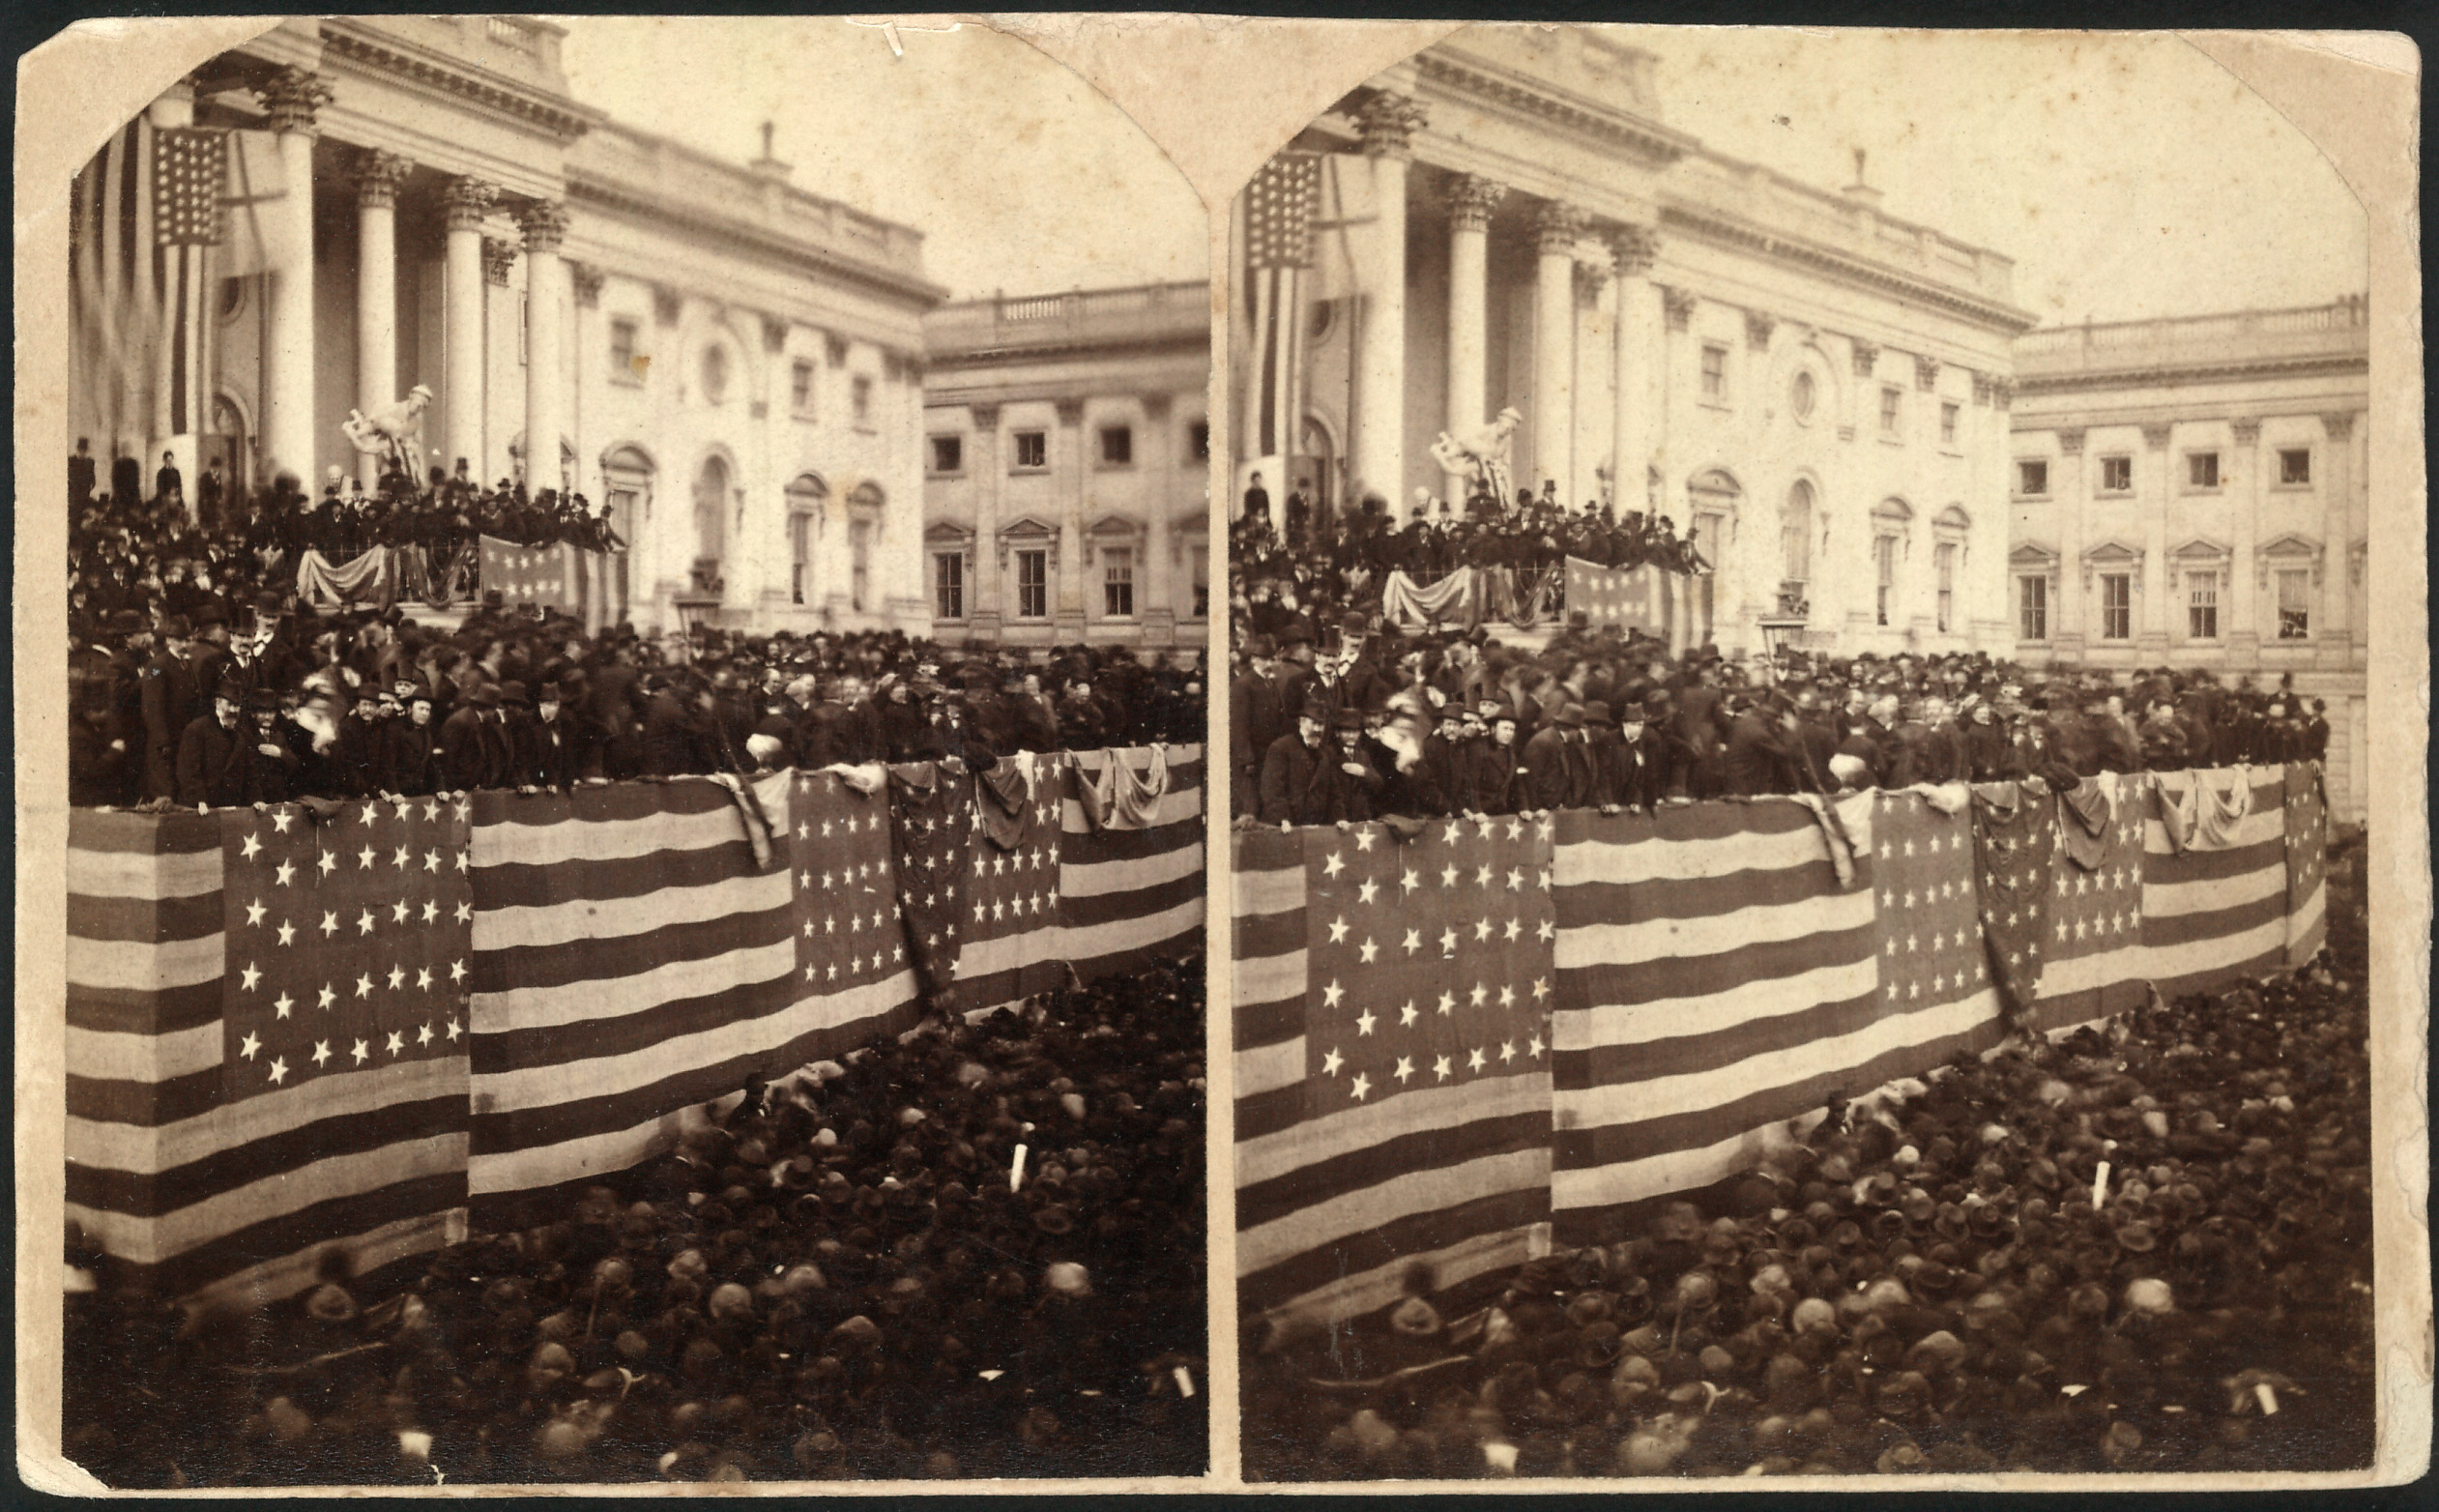 Chief Justice Morrison R. Waite administering the oath of office to Rutherford B. Hayes on a flag-draped inaugural stand on the east portico of the U.S. Capitol, 1877.